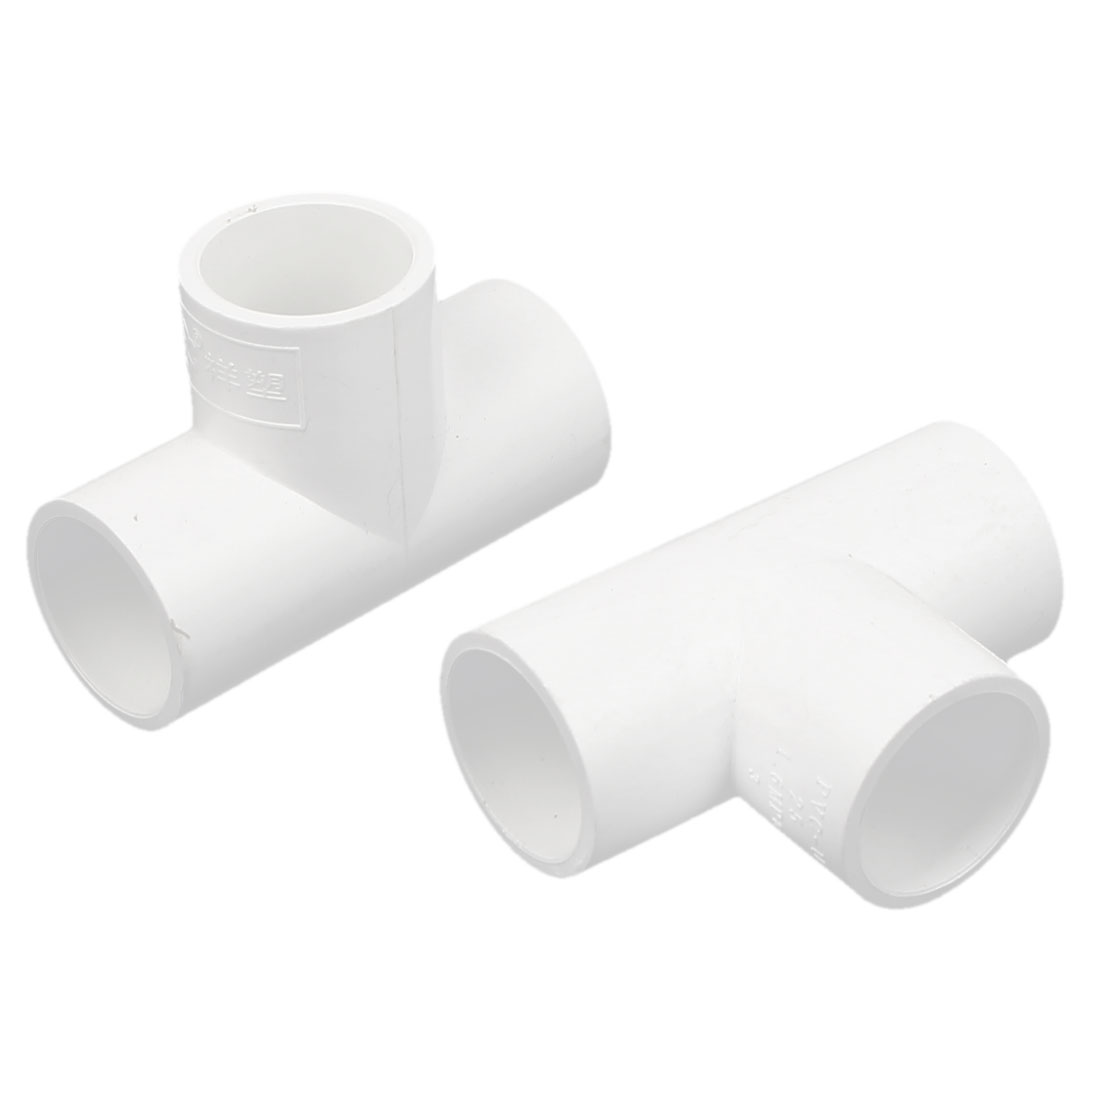 25mm Inner Dia 3 Way T Shaped PVC Water Pipe Tube Joint Coupler Connector 2pcs